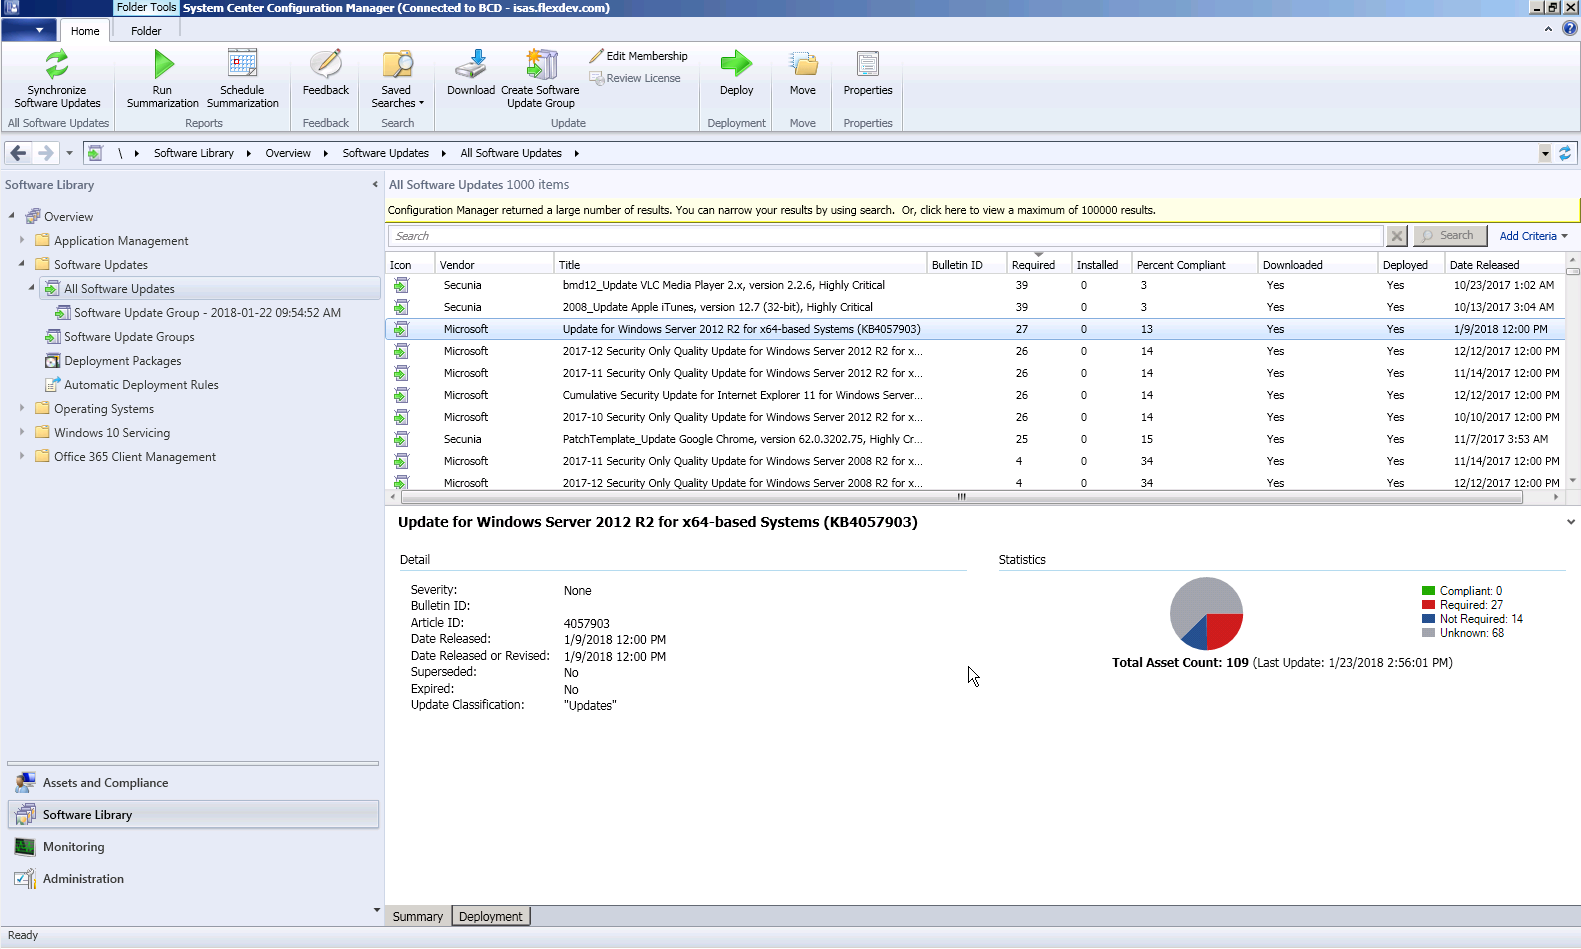 Configuring SCCM to Report Windows Update Information